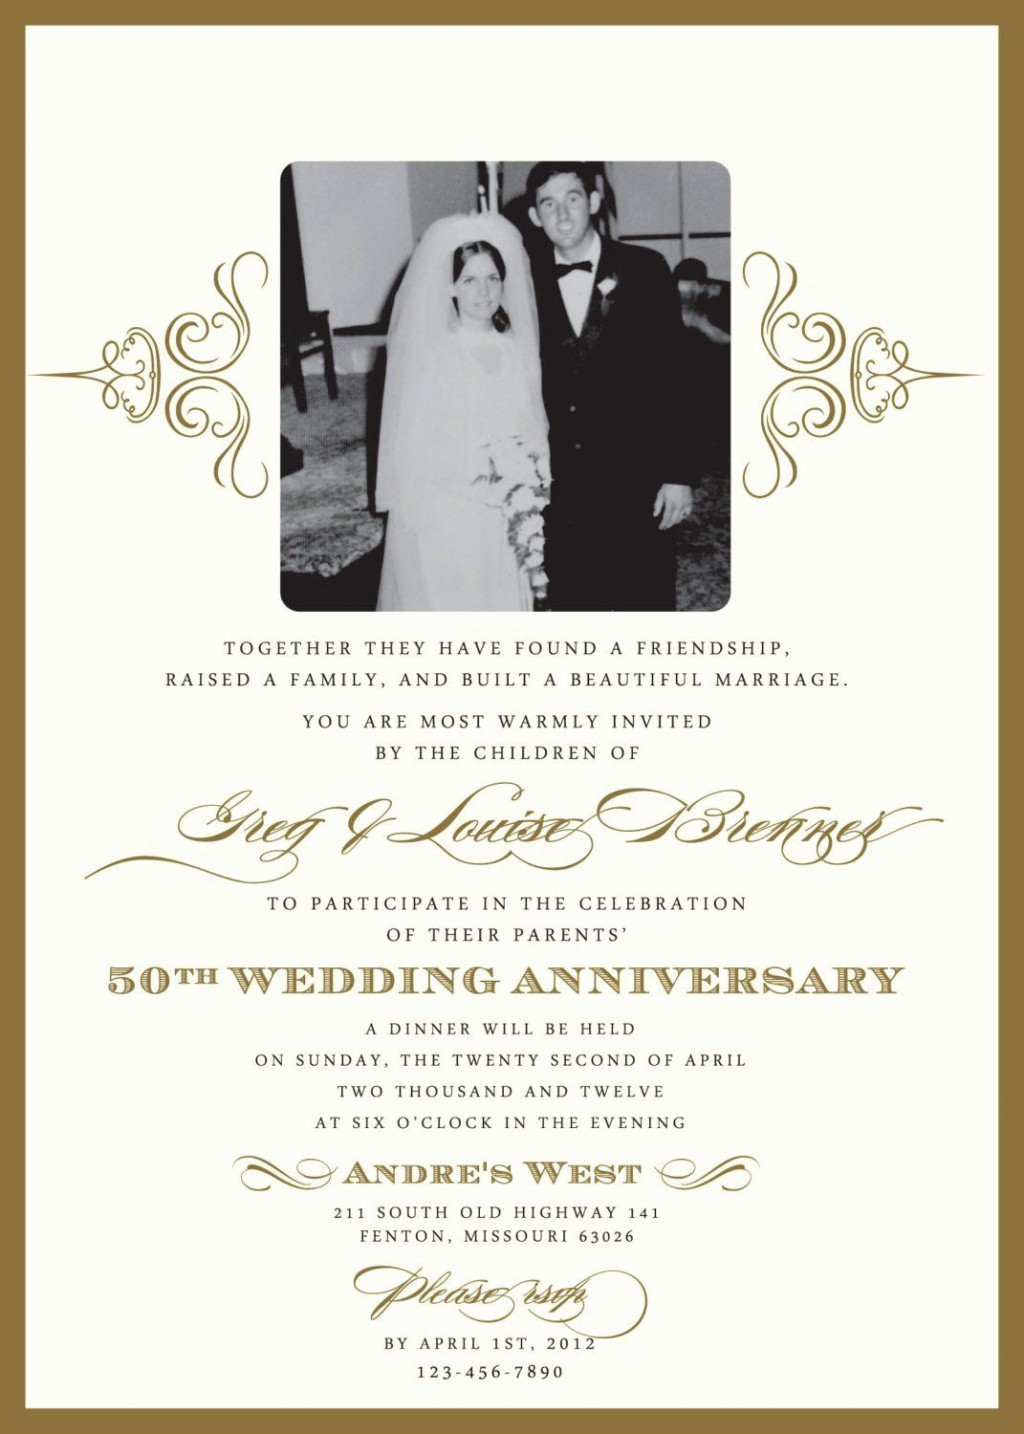 003 Amazing 50th Wedding Anniversary Party Invitation Template Inspiration  Templates FreeLarge